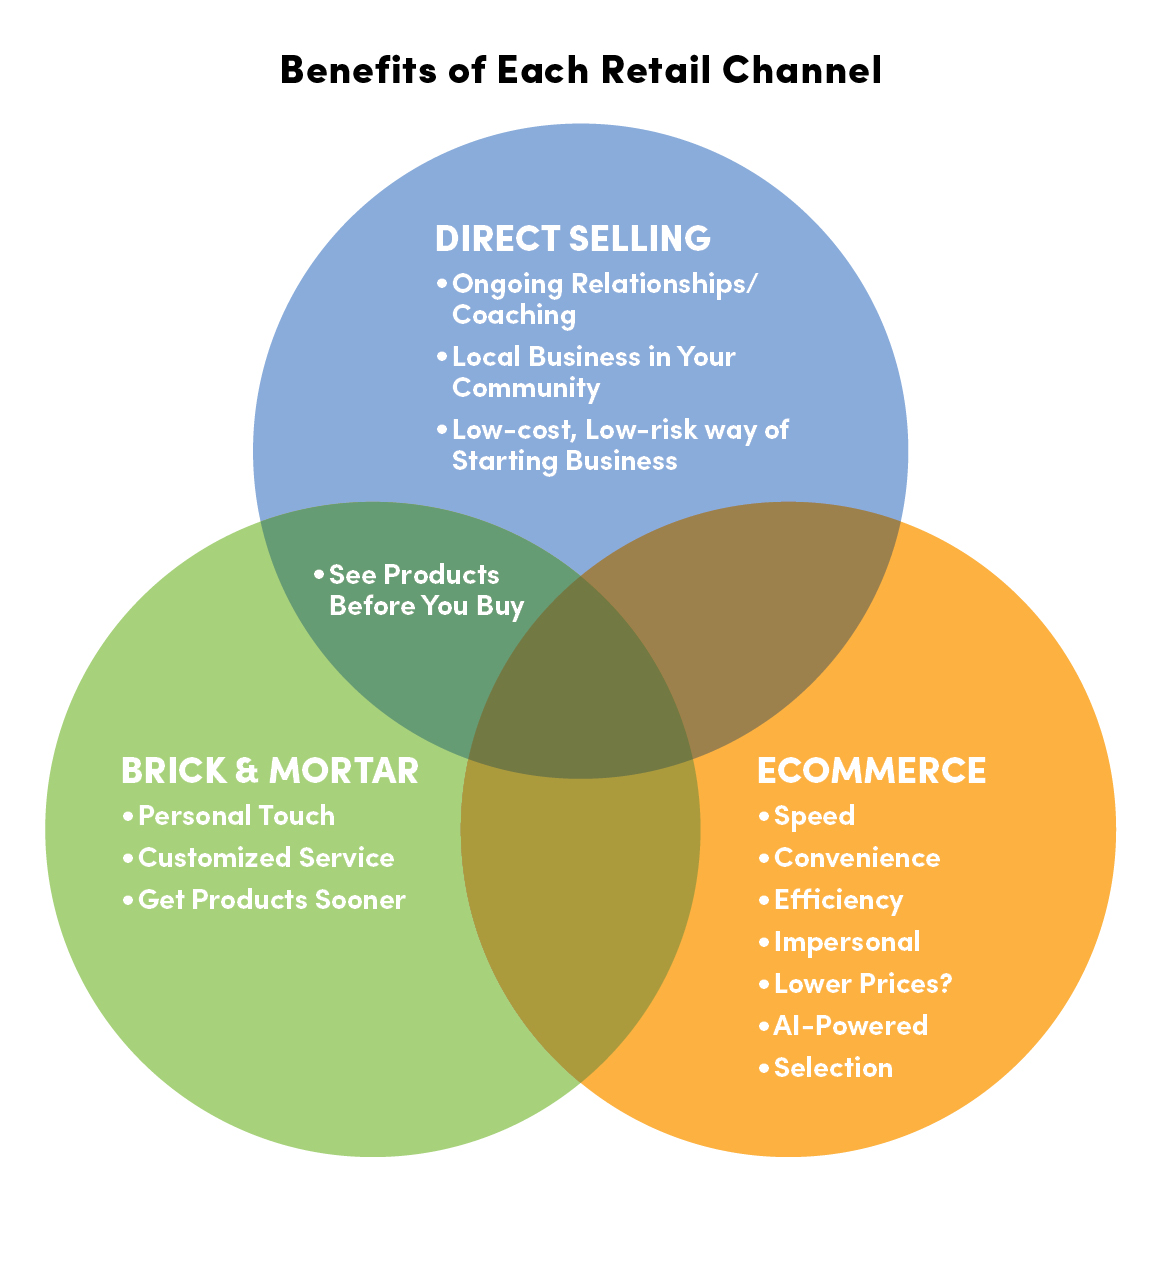 Benefits of Each Retail Channel